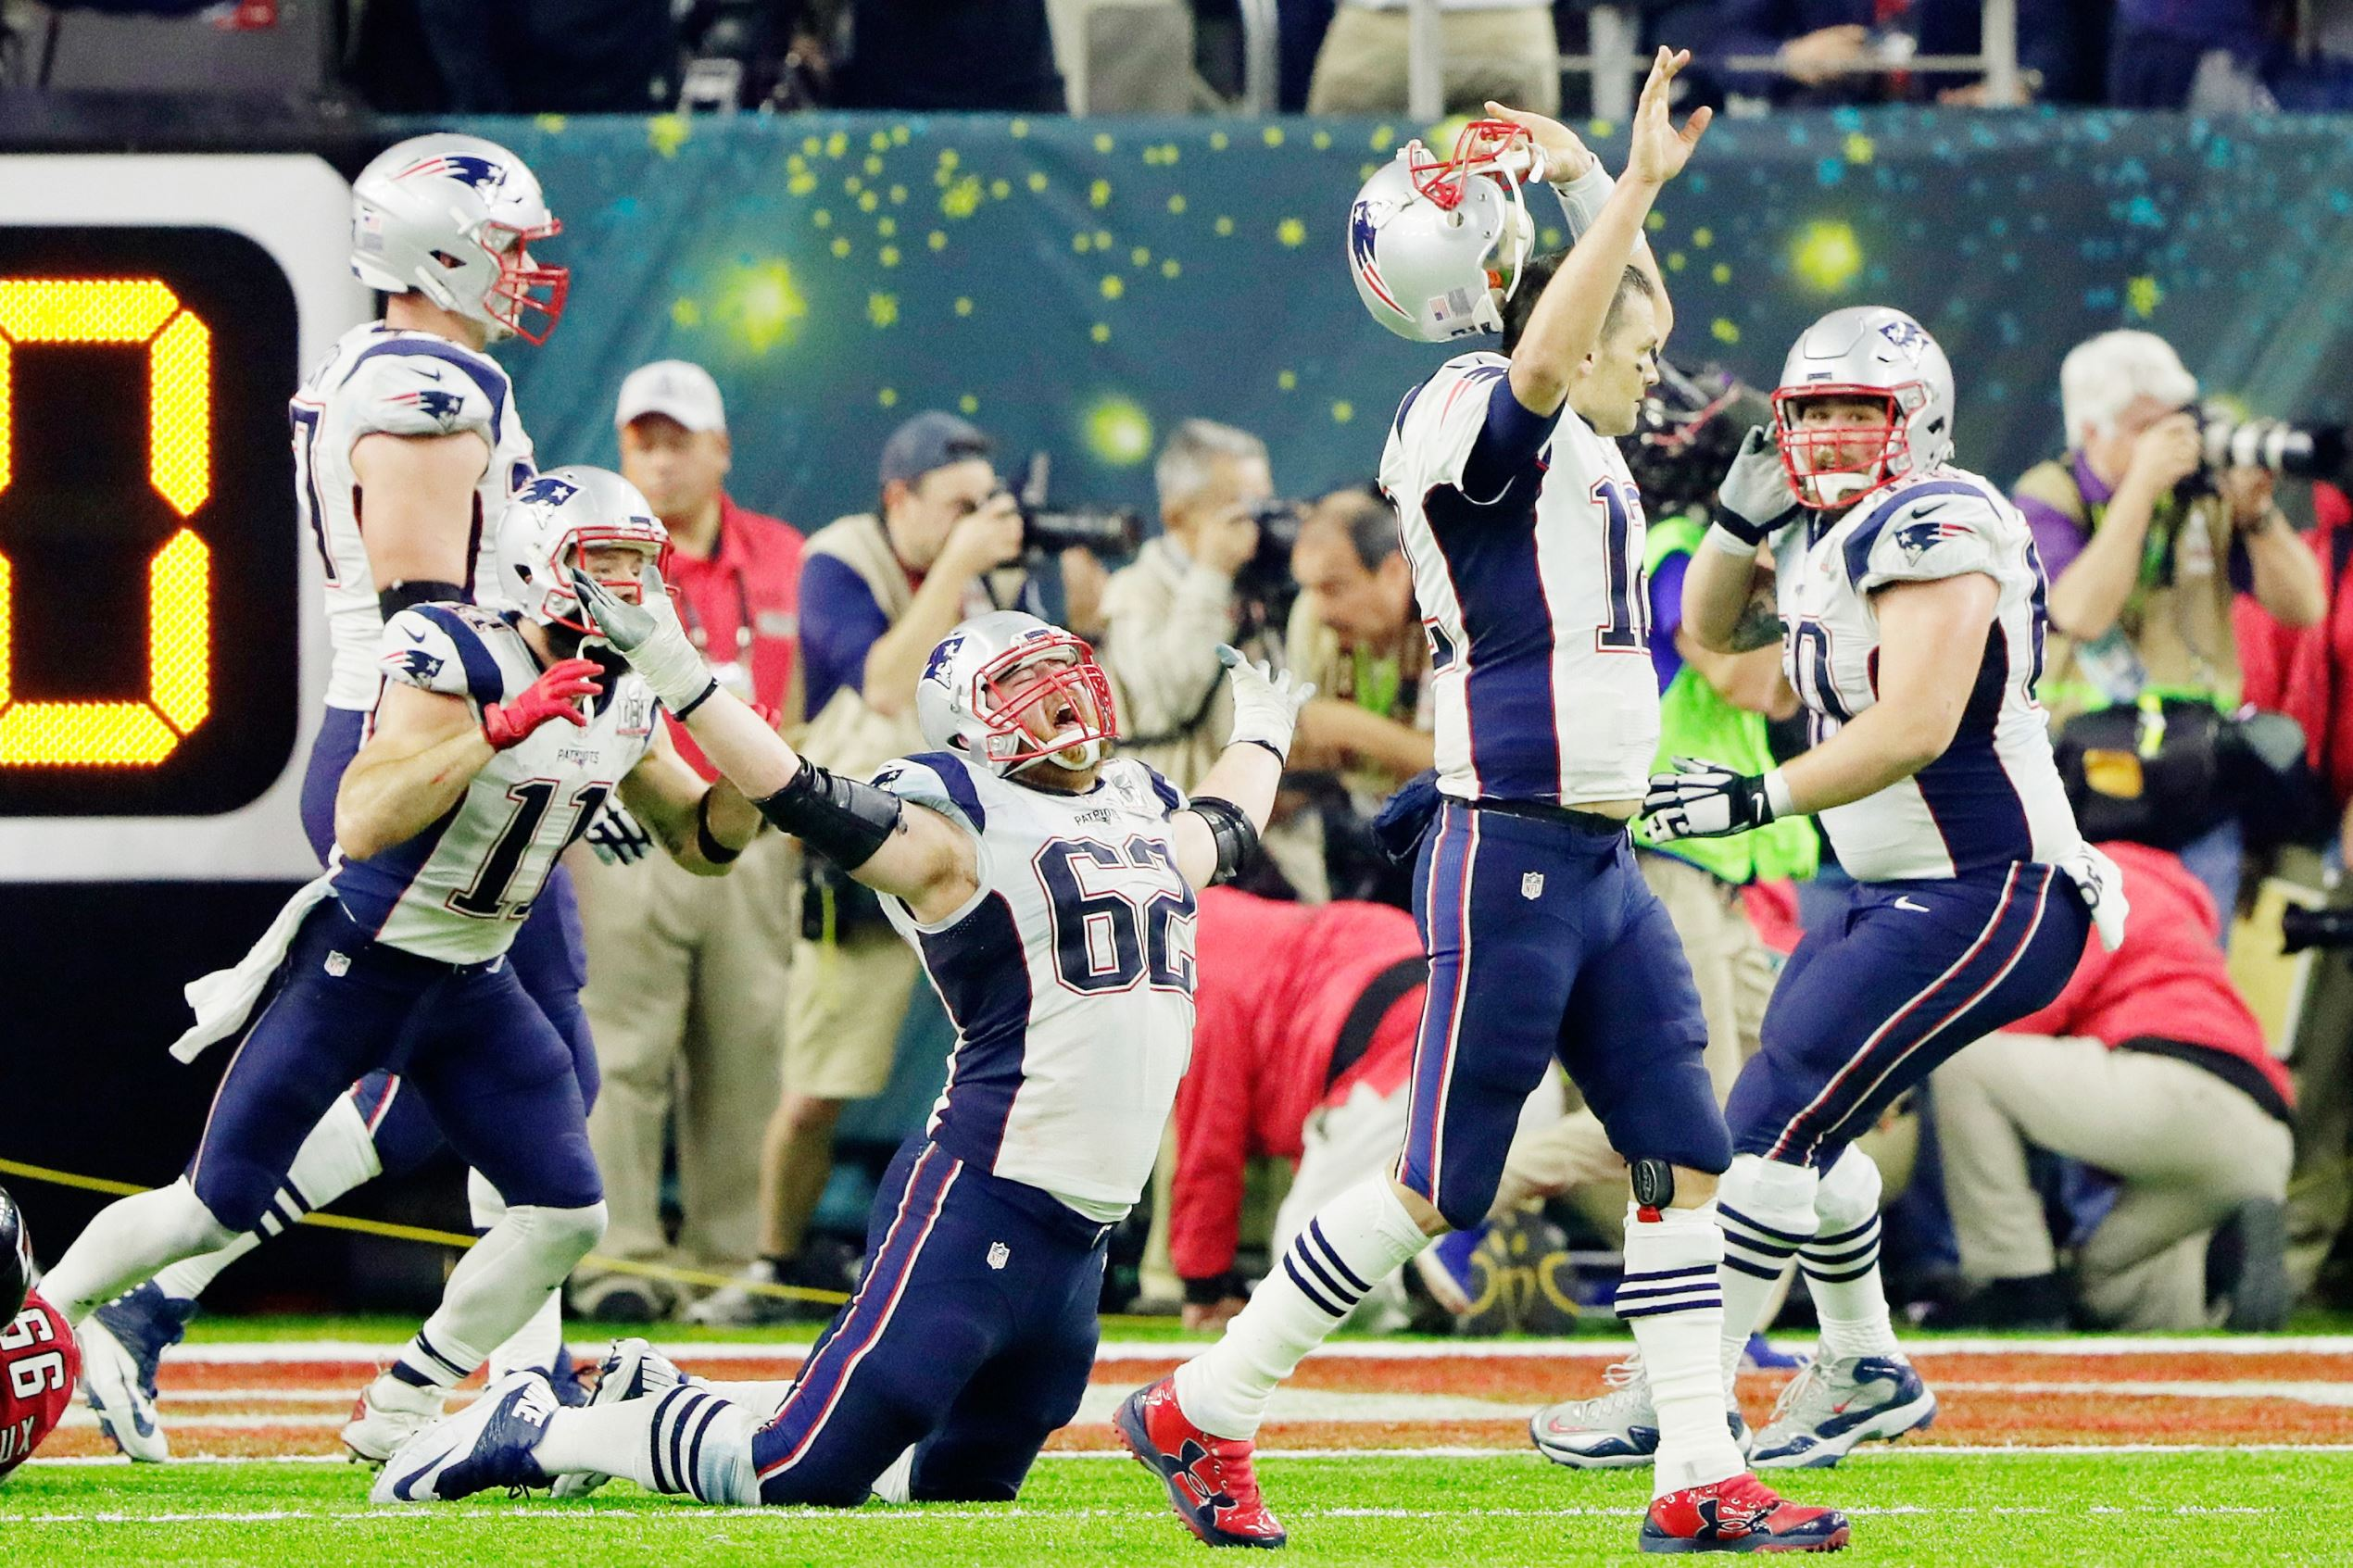 Slide 2 of 29: Tom Brady #12 of the New England Patriots reacts after defeating the Atlanta Falcons 34-38 in overtime during Super Bowl 51 at NRG Stadium on Feb. 5, in Houston, Texas.